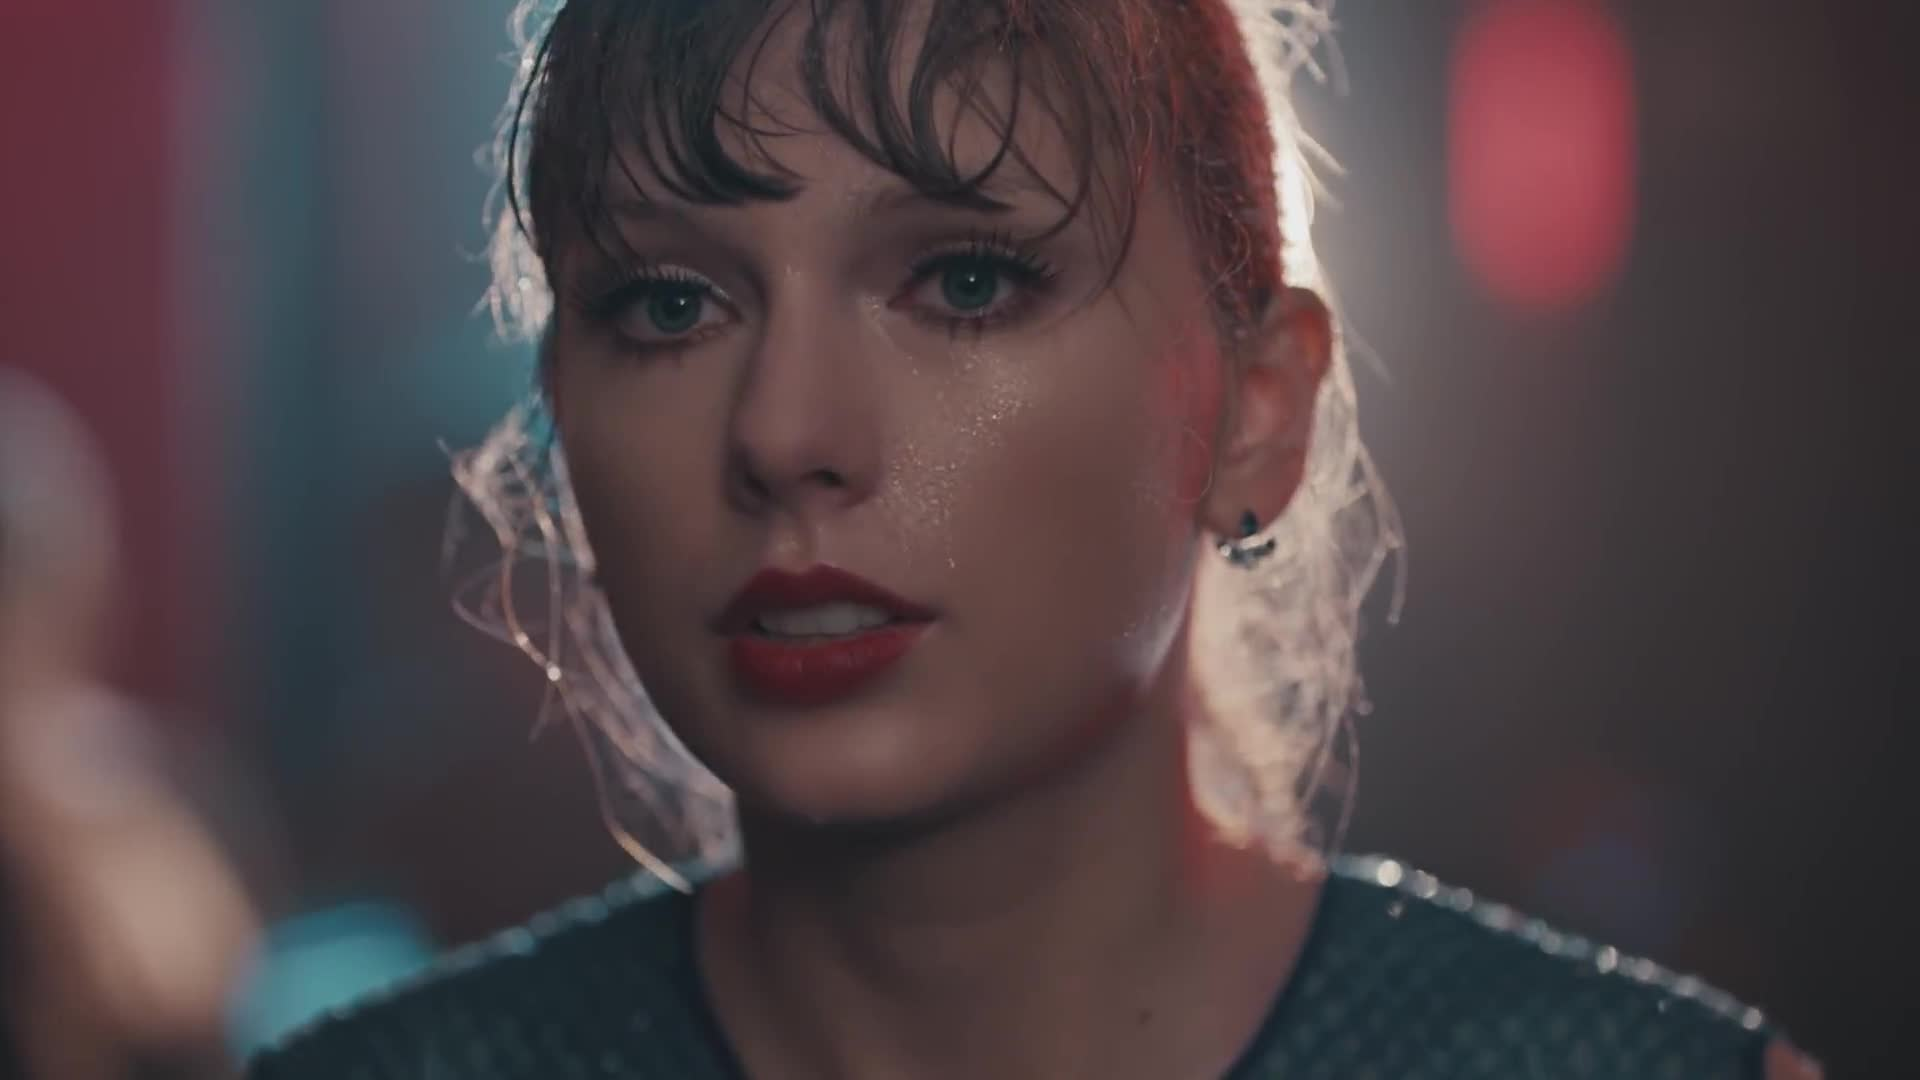 Big, Delicate, LLC, Machine, Music, Pop, Records, Taylor Swift, TaylorSwiftVEVO, celebs, Taylor Swift - Delicate GIFs